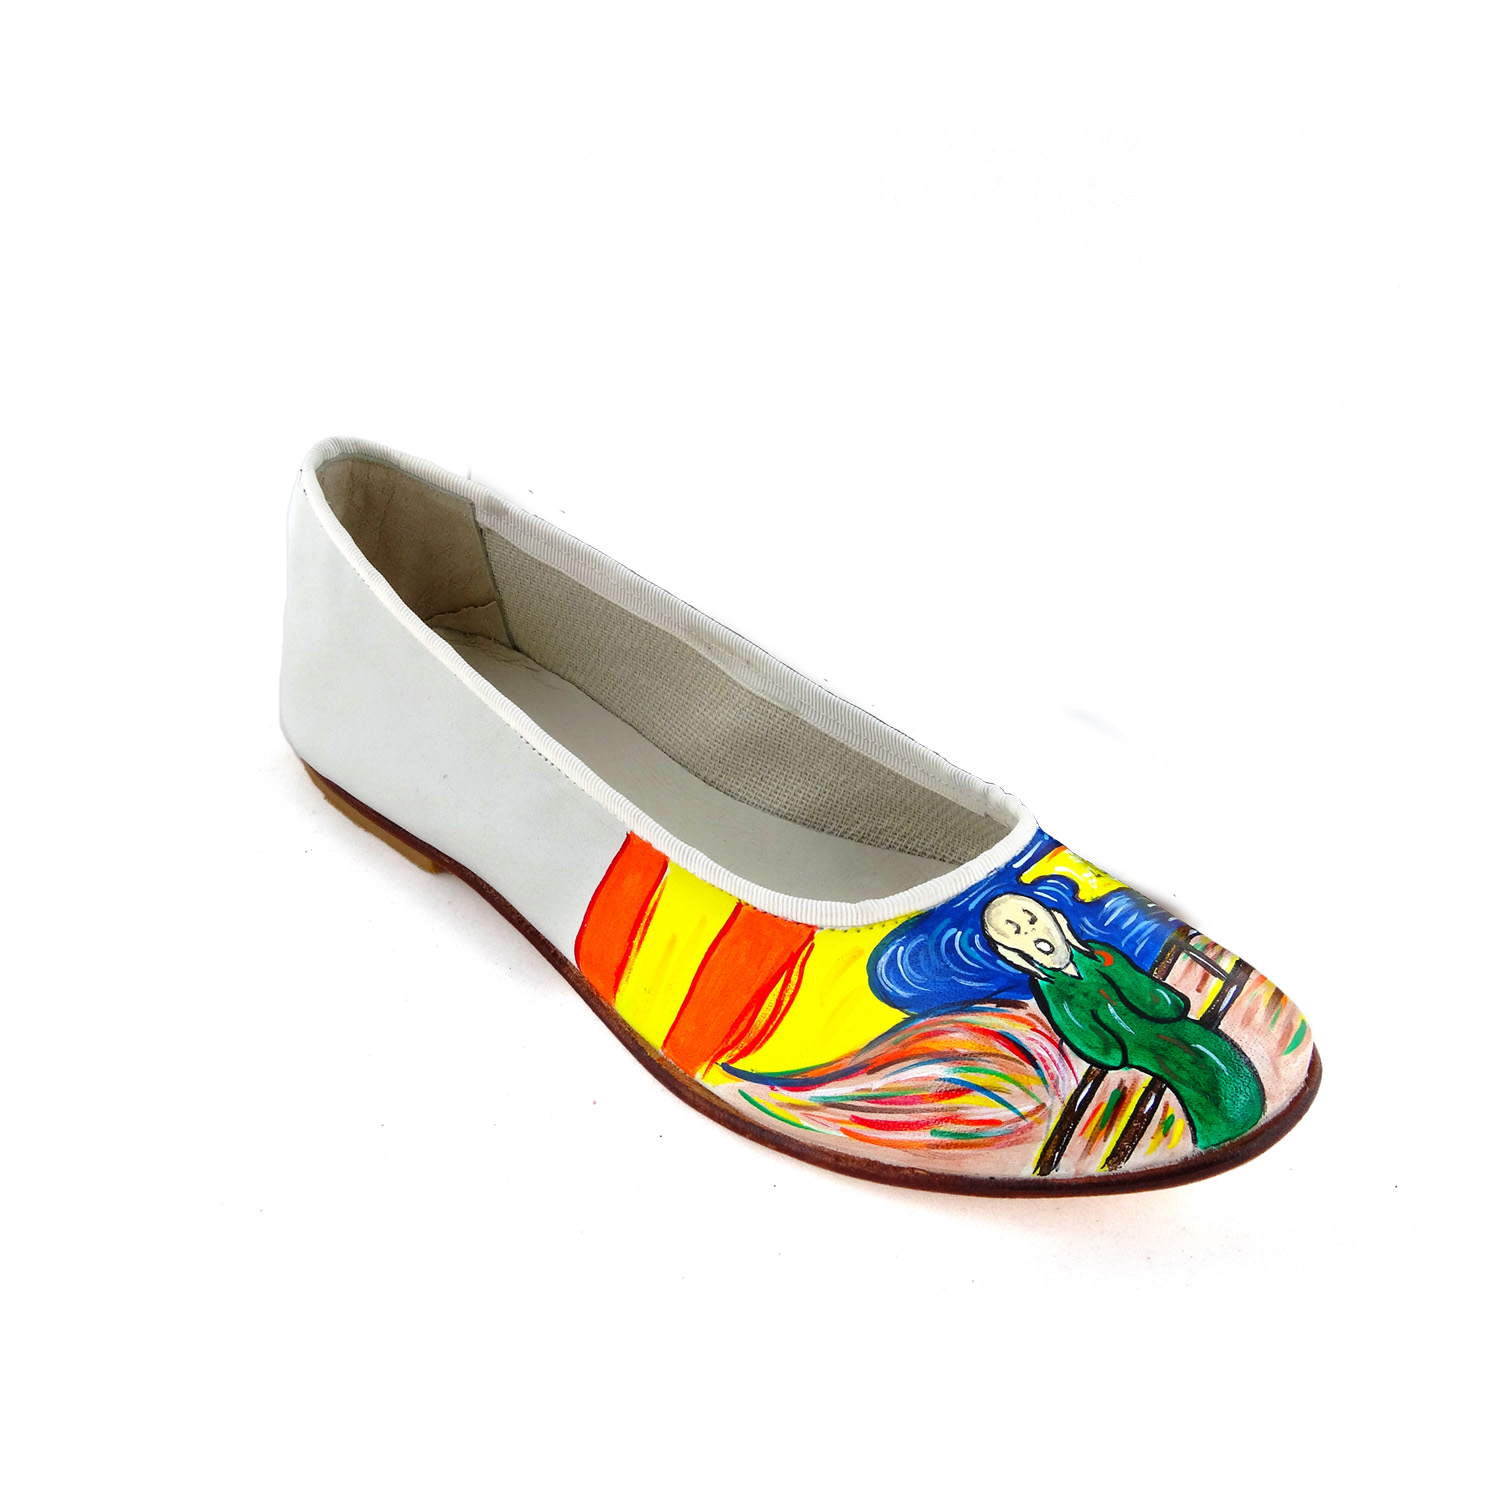 Hand-painted ballet flats - The Scream by Munch